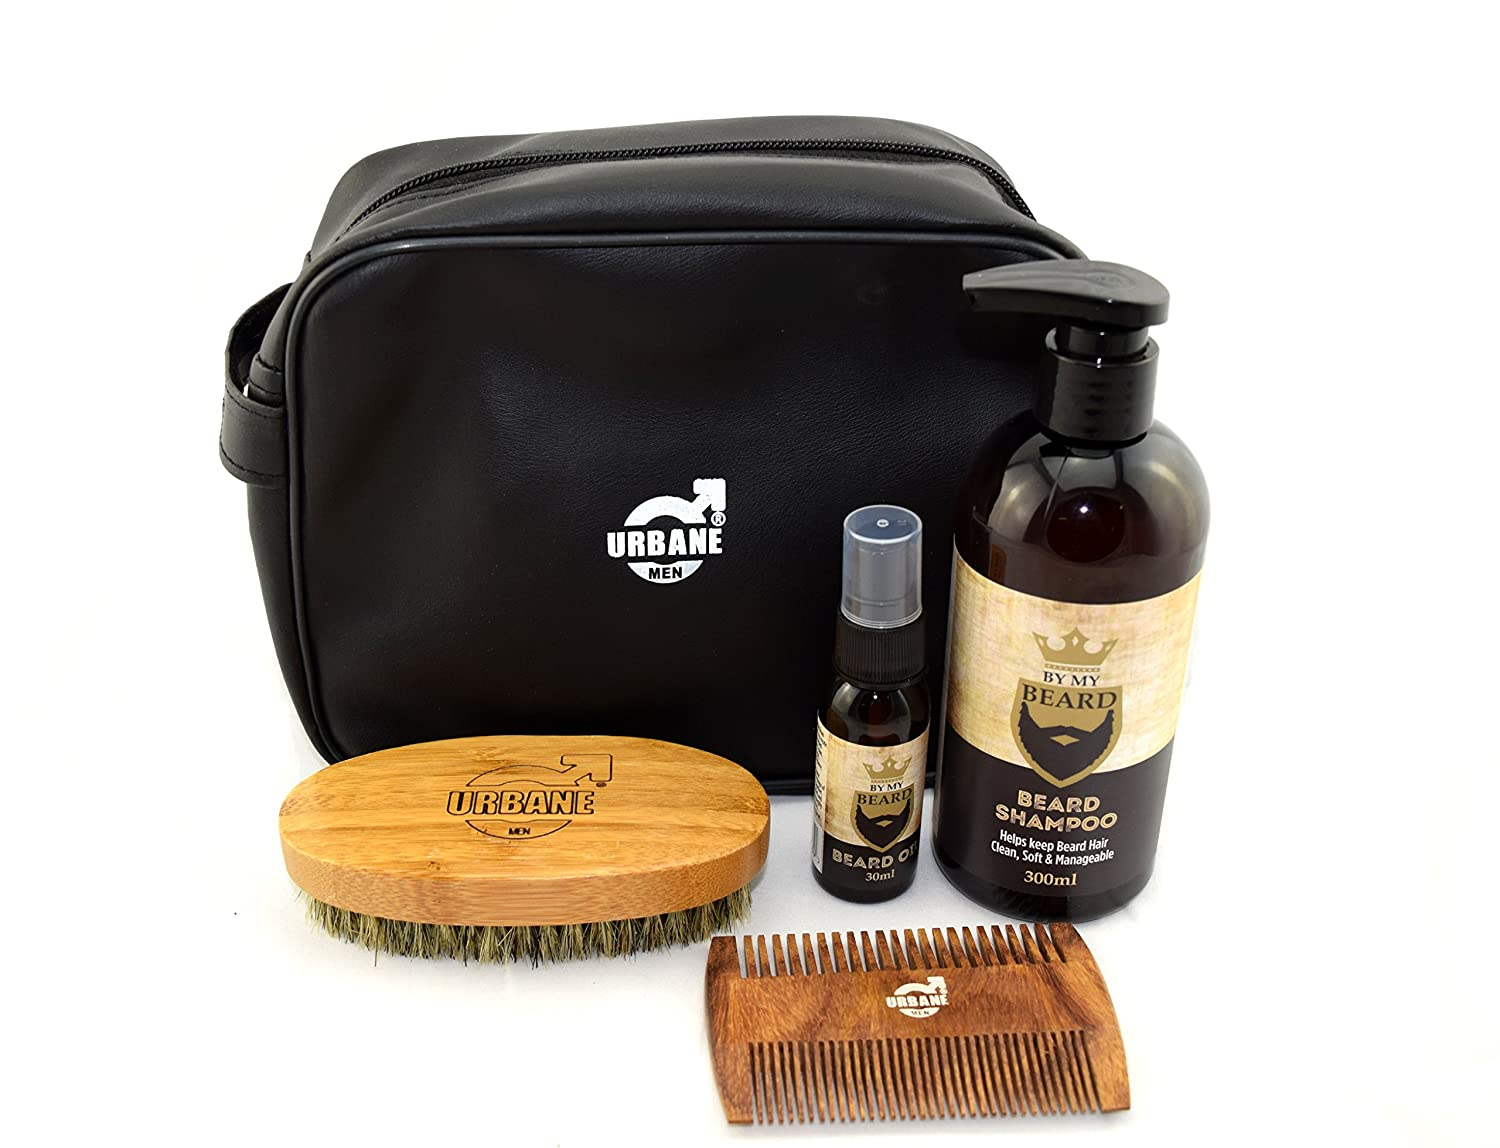 Urbane Men Beard Grooming Kit with Wash Bag - Beard Shampoo, Oil, Brush and Comb Gift Set